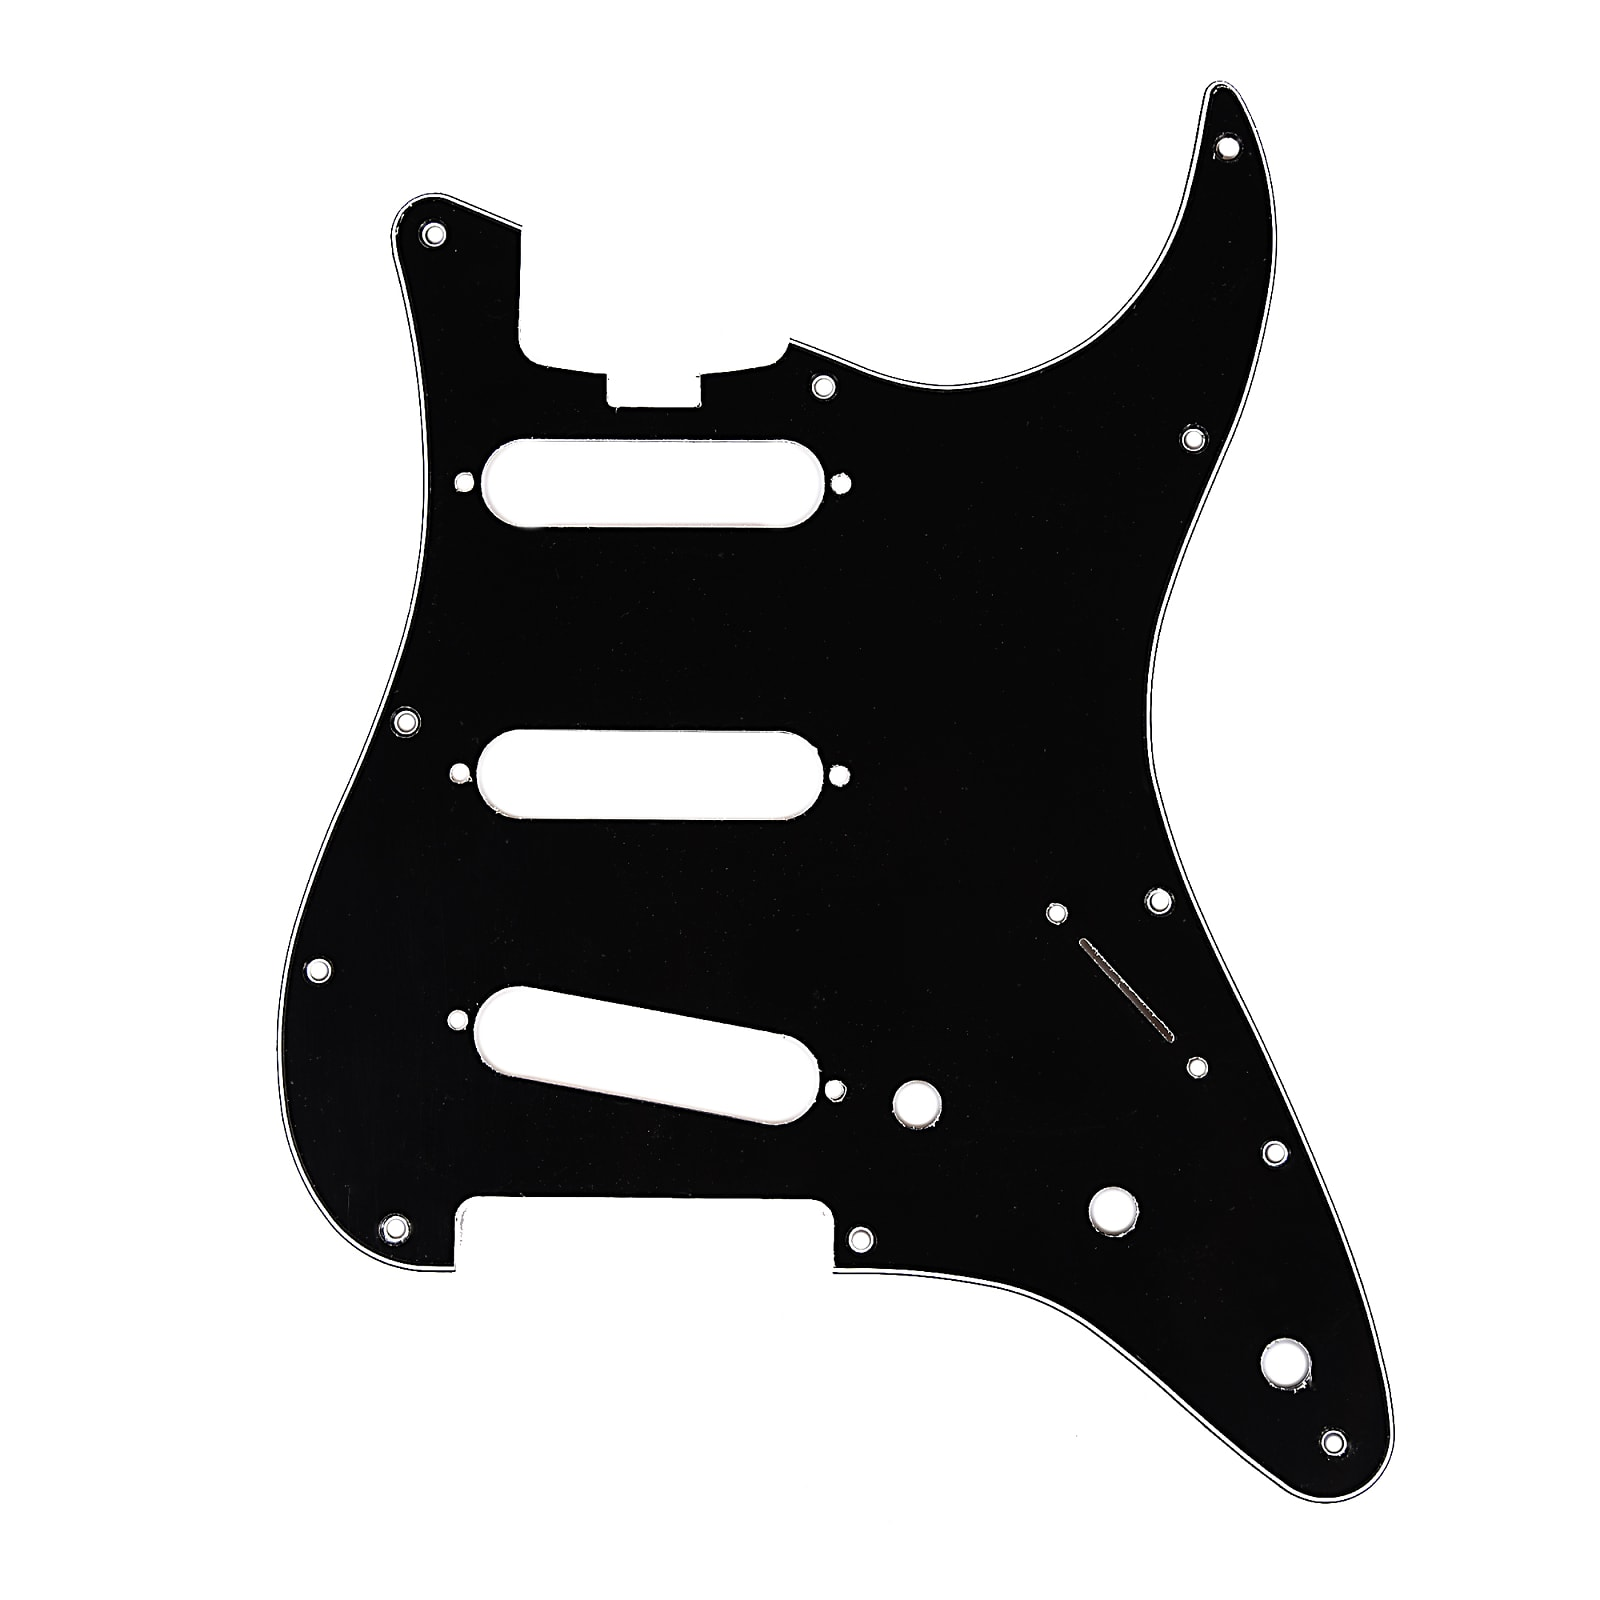 MINT GREEN 3-Ply NEW Pickguard Outline For Strat